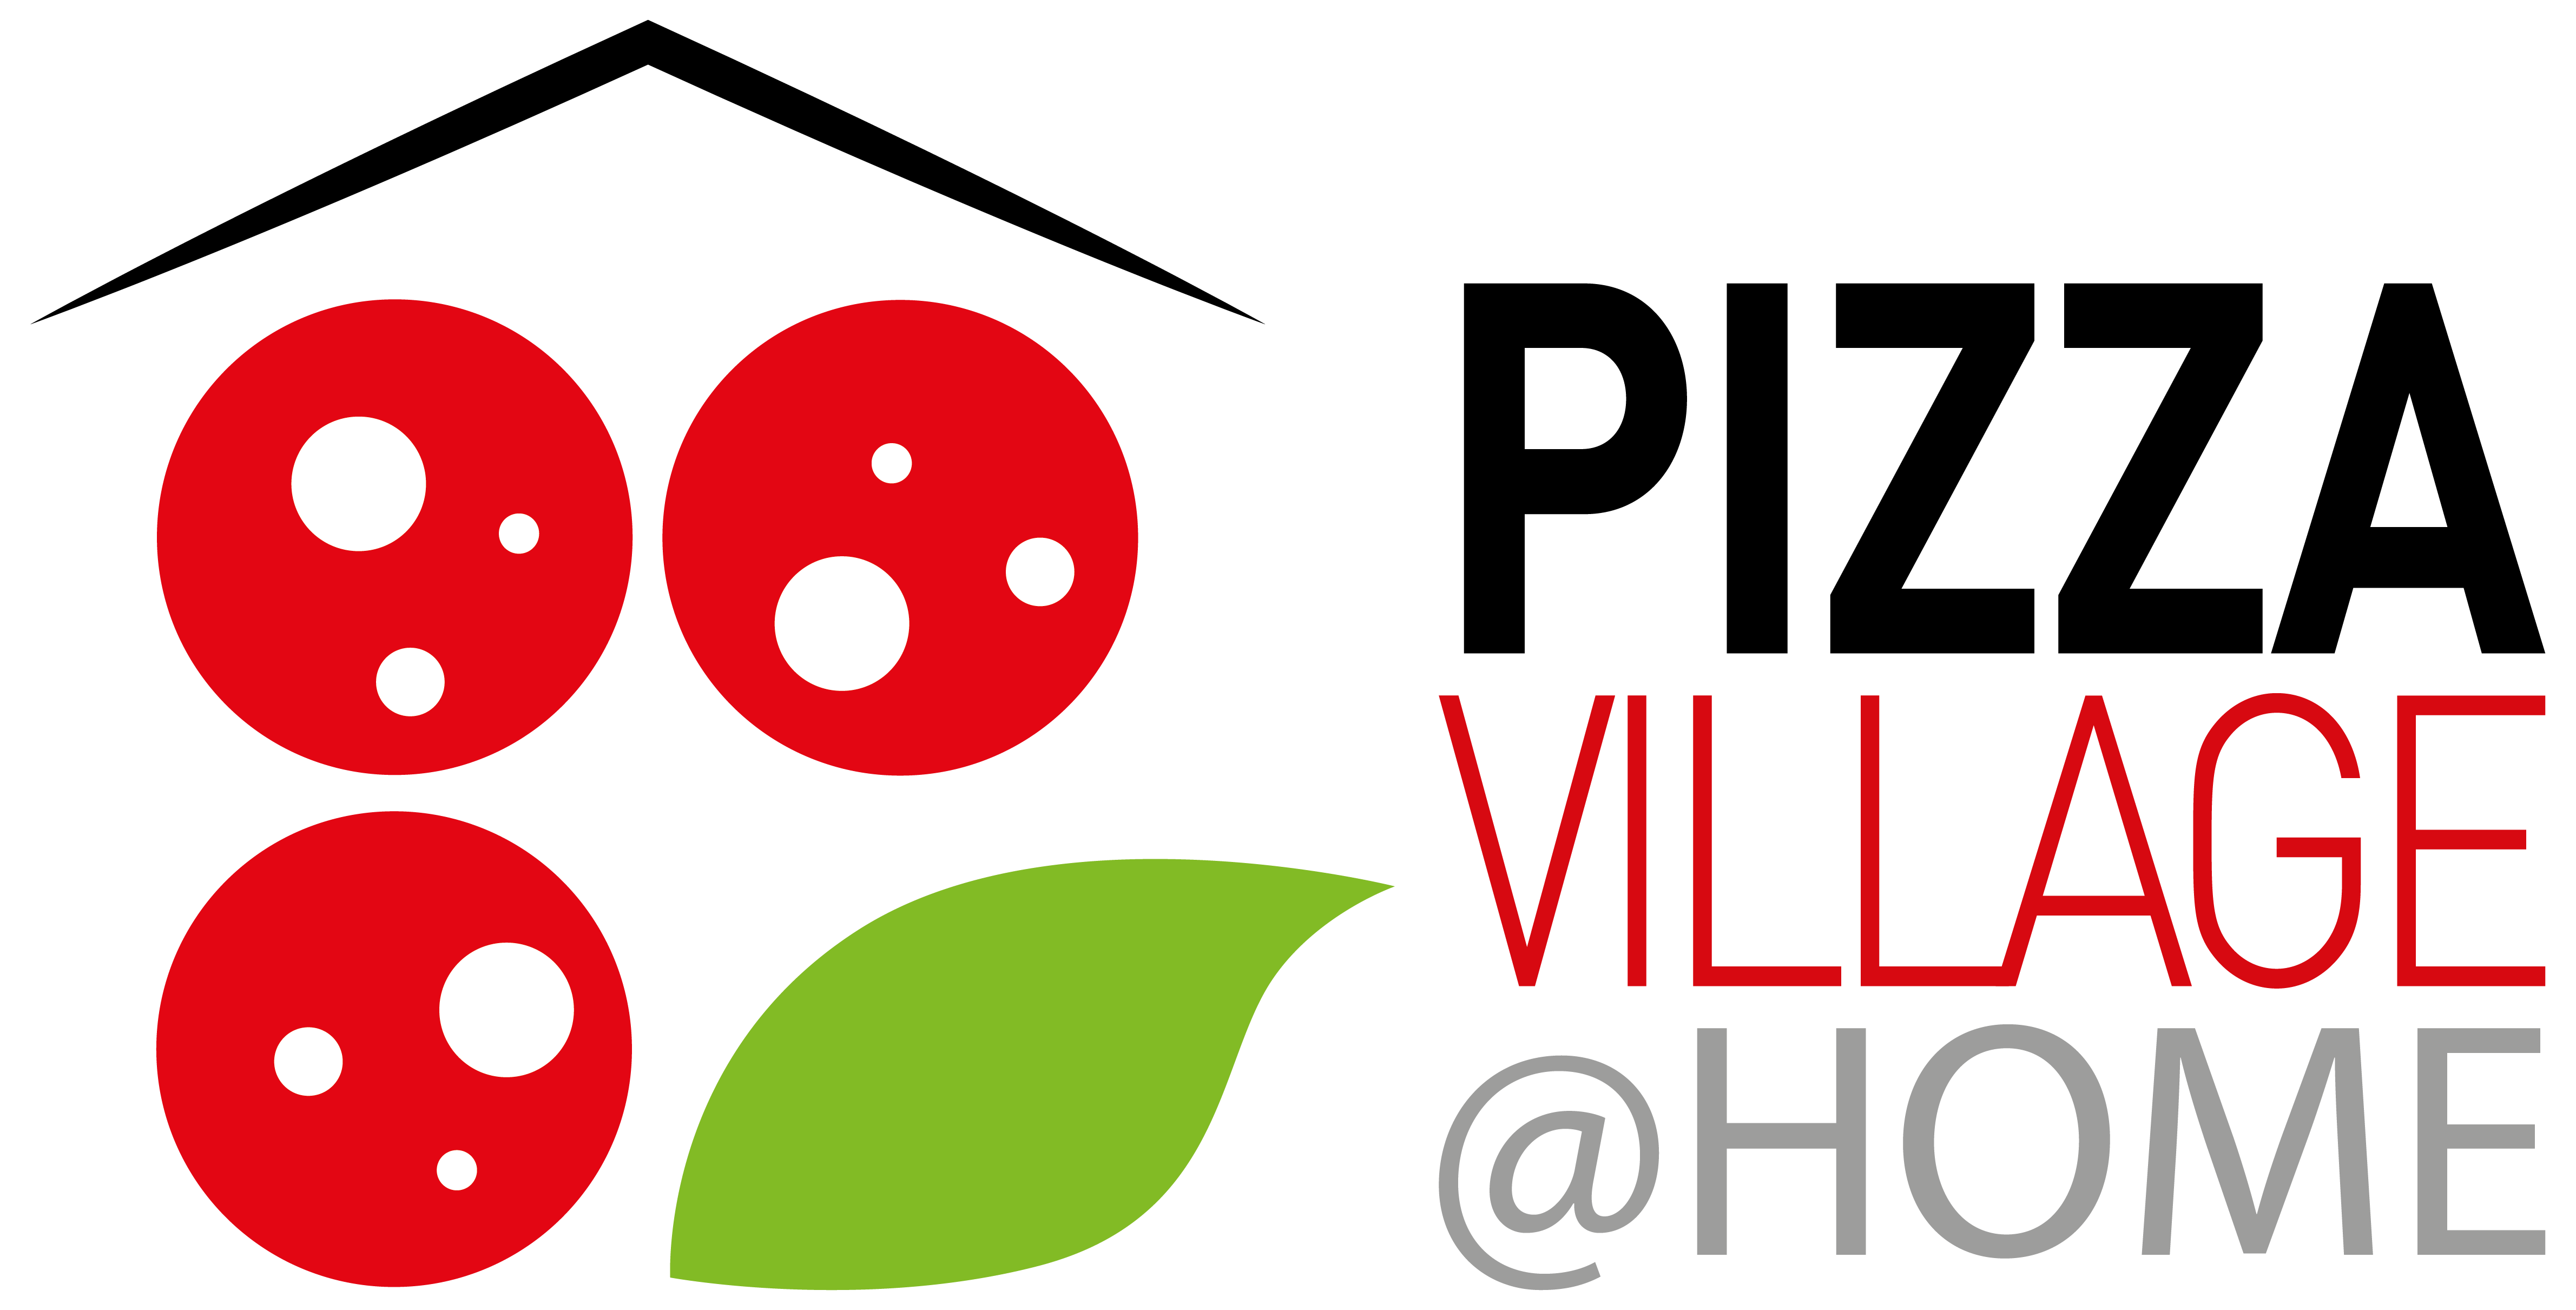 A Milano arriva il Pizza Village @ Home